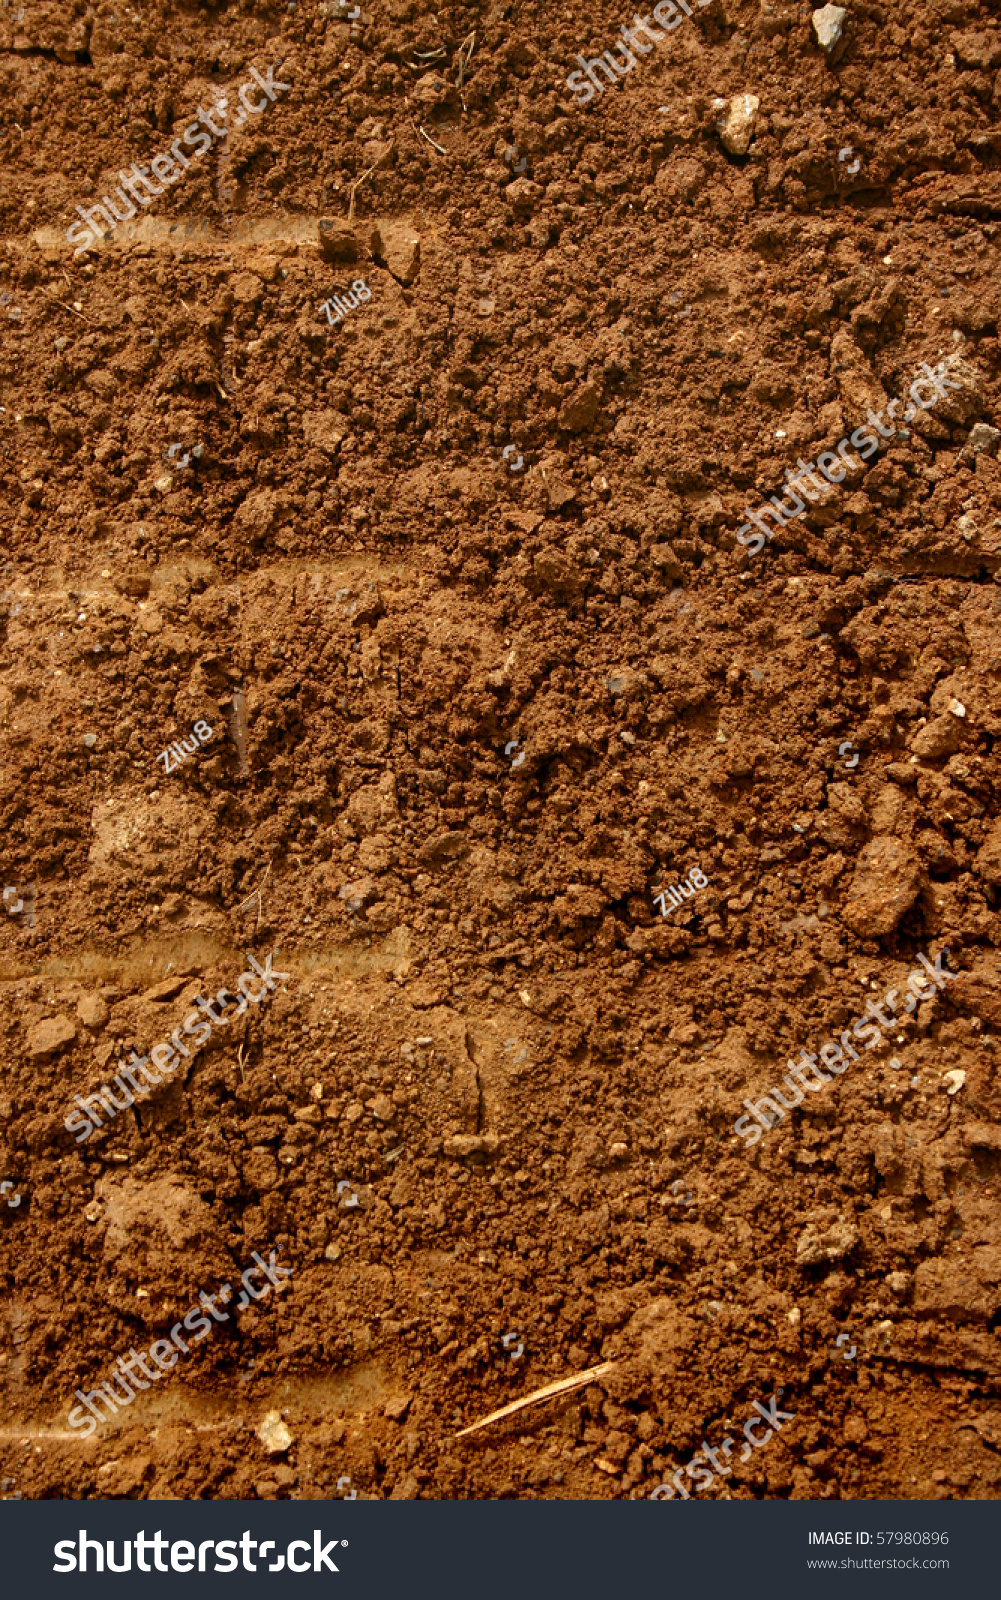 Soil Texture Stock Photo 57980896 : Shutterstock